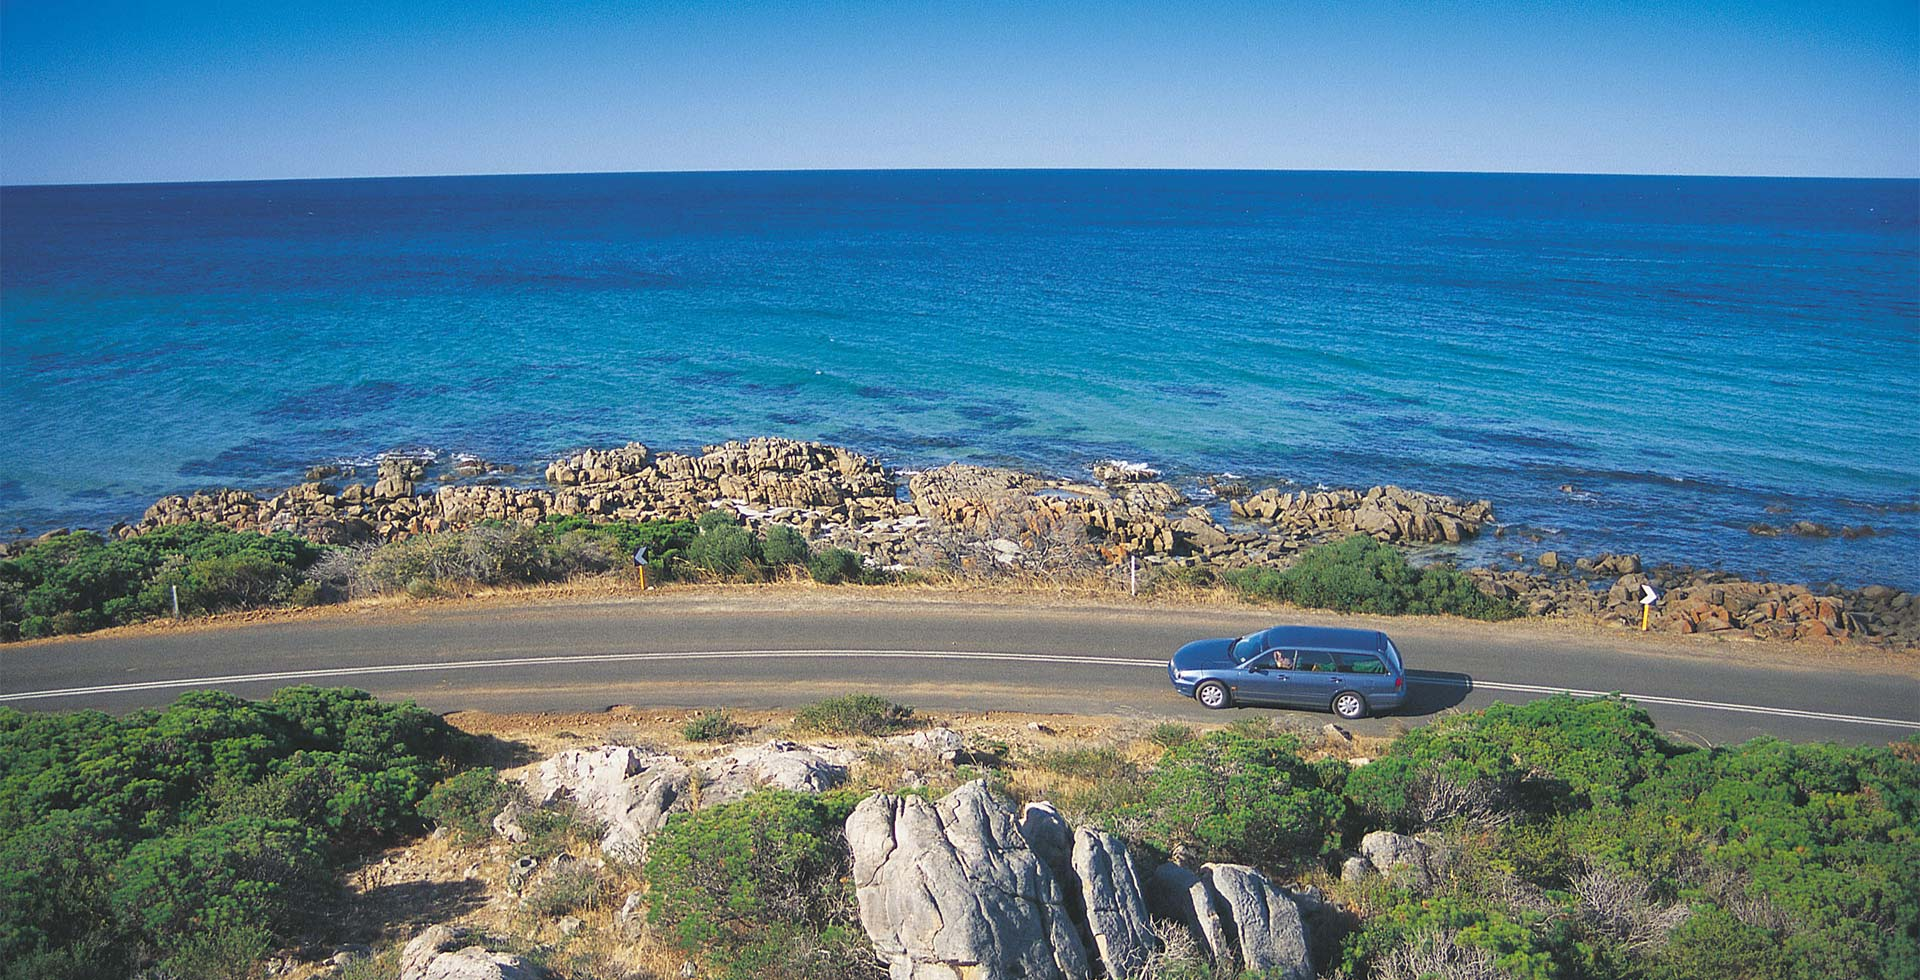 Take a scenic drive along Meelup Beach Road throughout Dunsborough